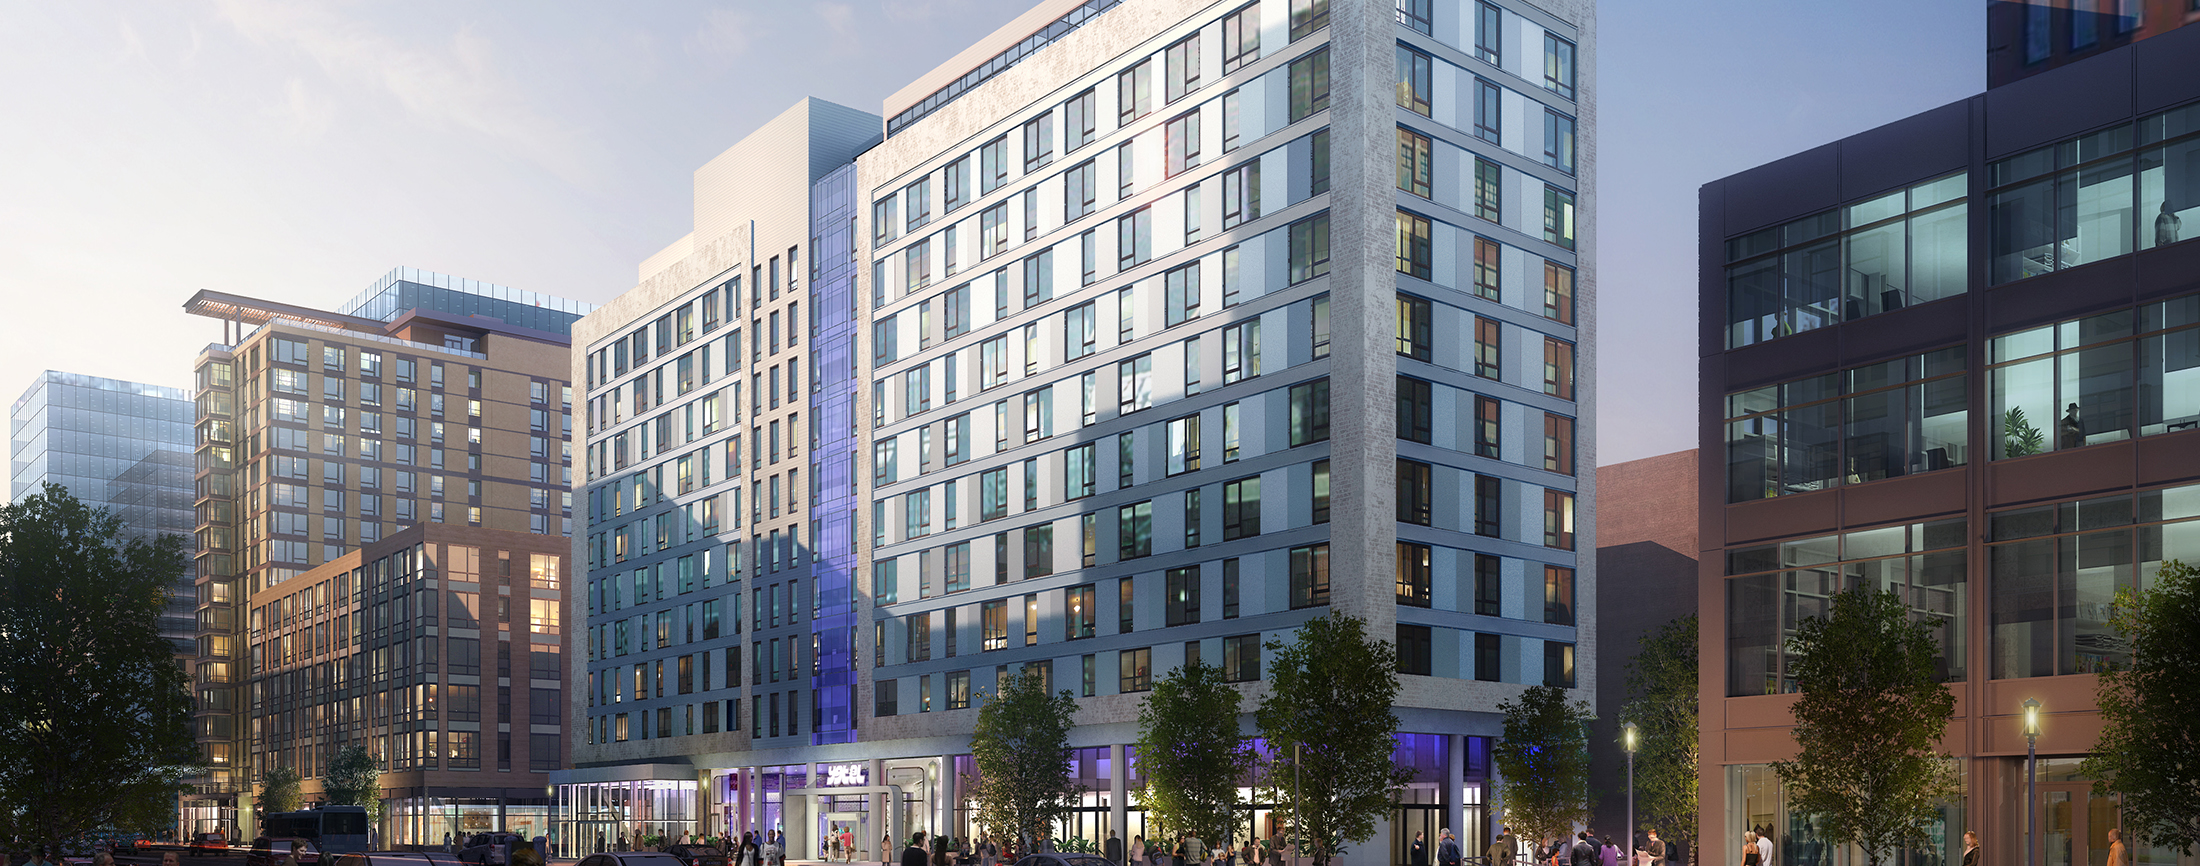 Another Hotel to Open Near BCEC in 2017